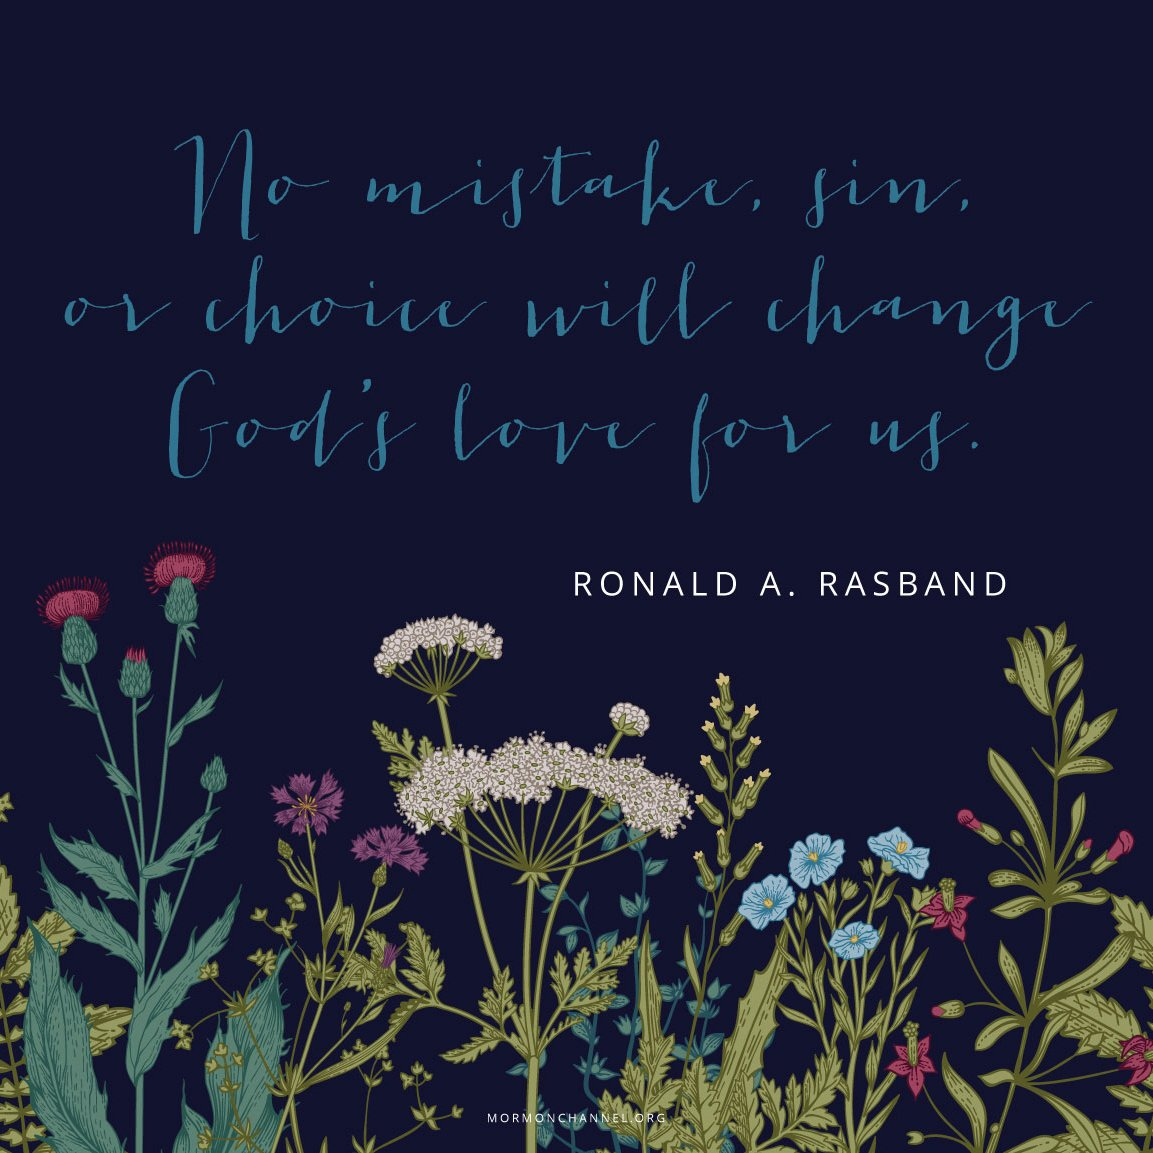 &quot;Do not forget, Heavenly Father knows and loves each of you, and He is always ready to help.&quot; —RonaldA. Rasband  #QuoteOfTheDay <br>http://pic.twitter.com/xSyEJkDSKi